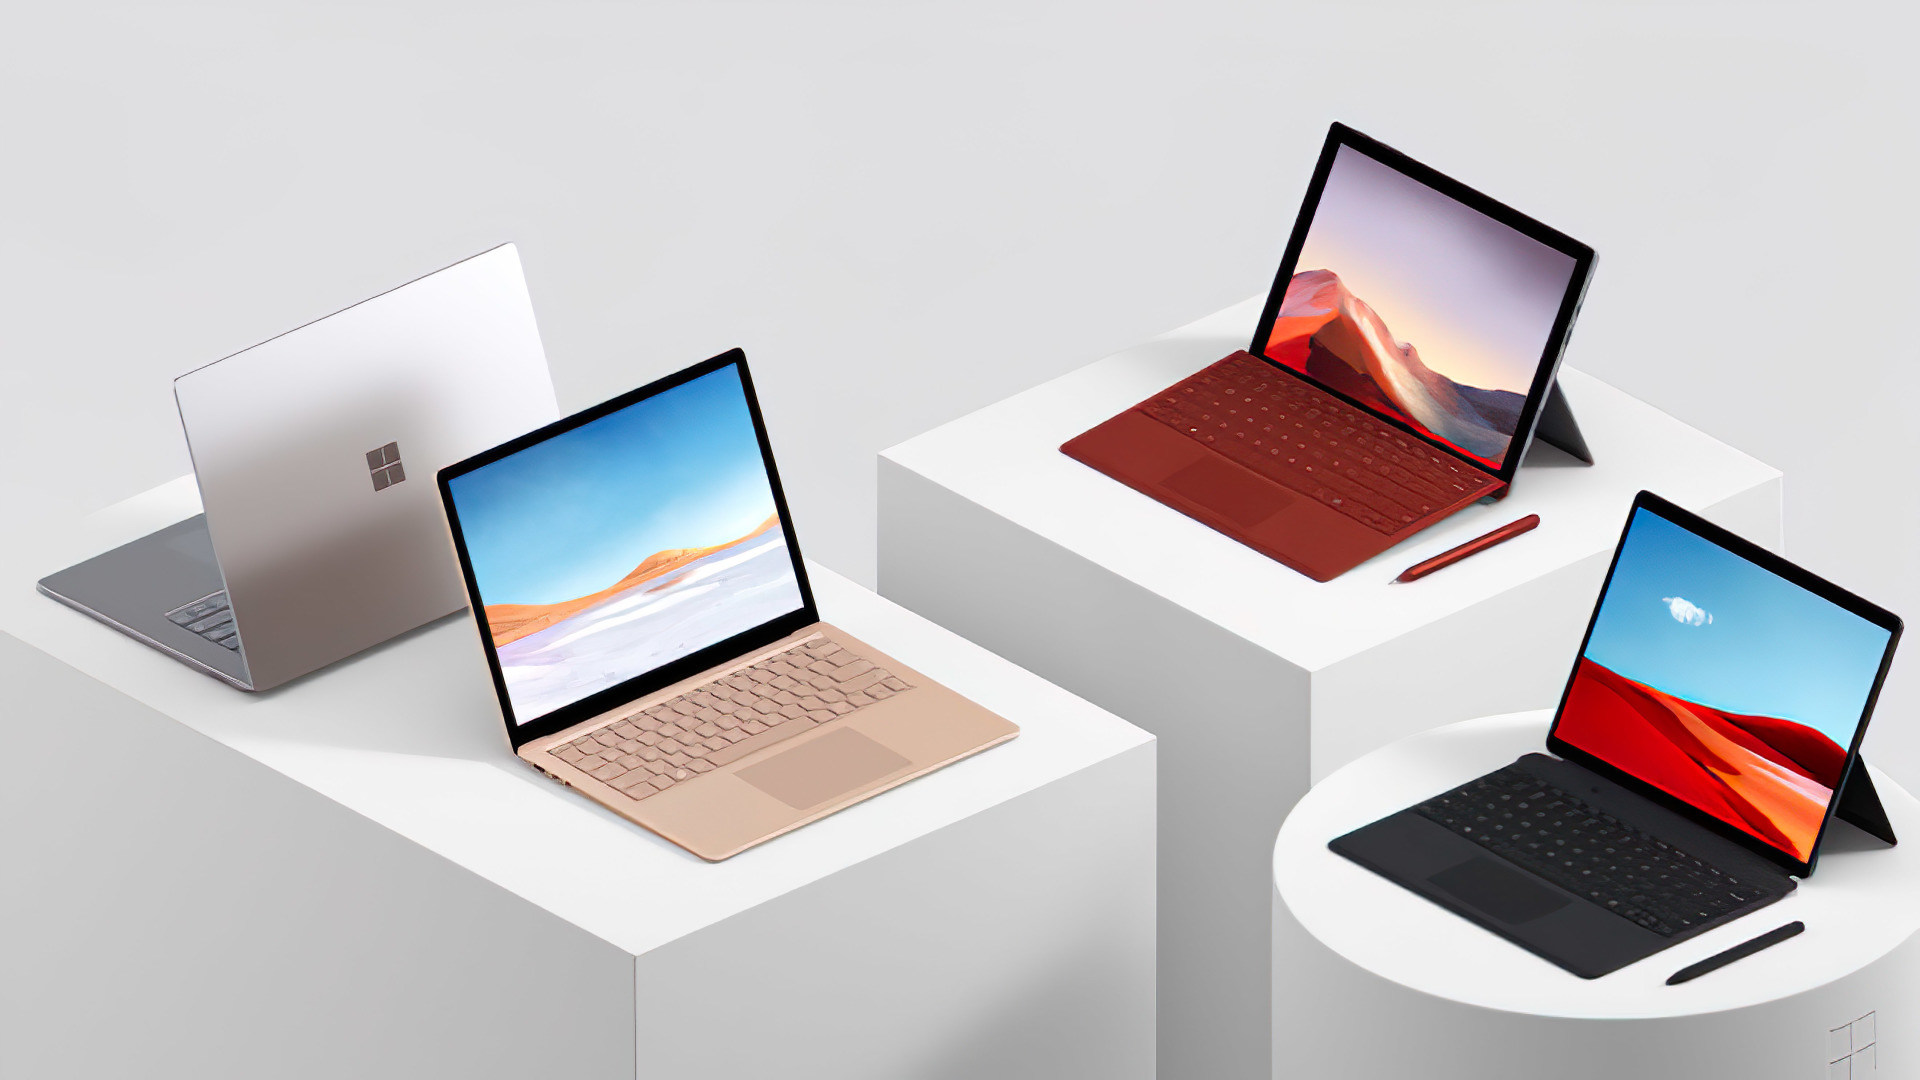 Microsoft, Surface, Surface Pro, Surface Laptop, Surface Laptop 3, Surface Pro 7, Surface Pro X, Surface Event 2019